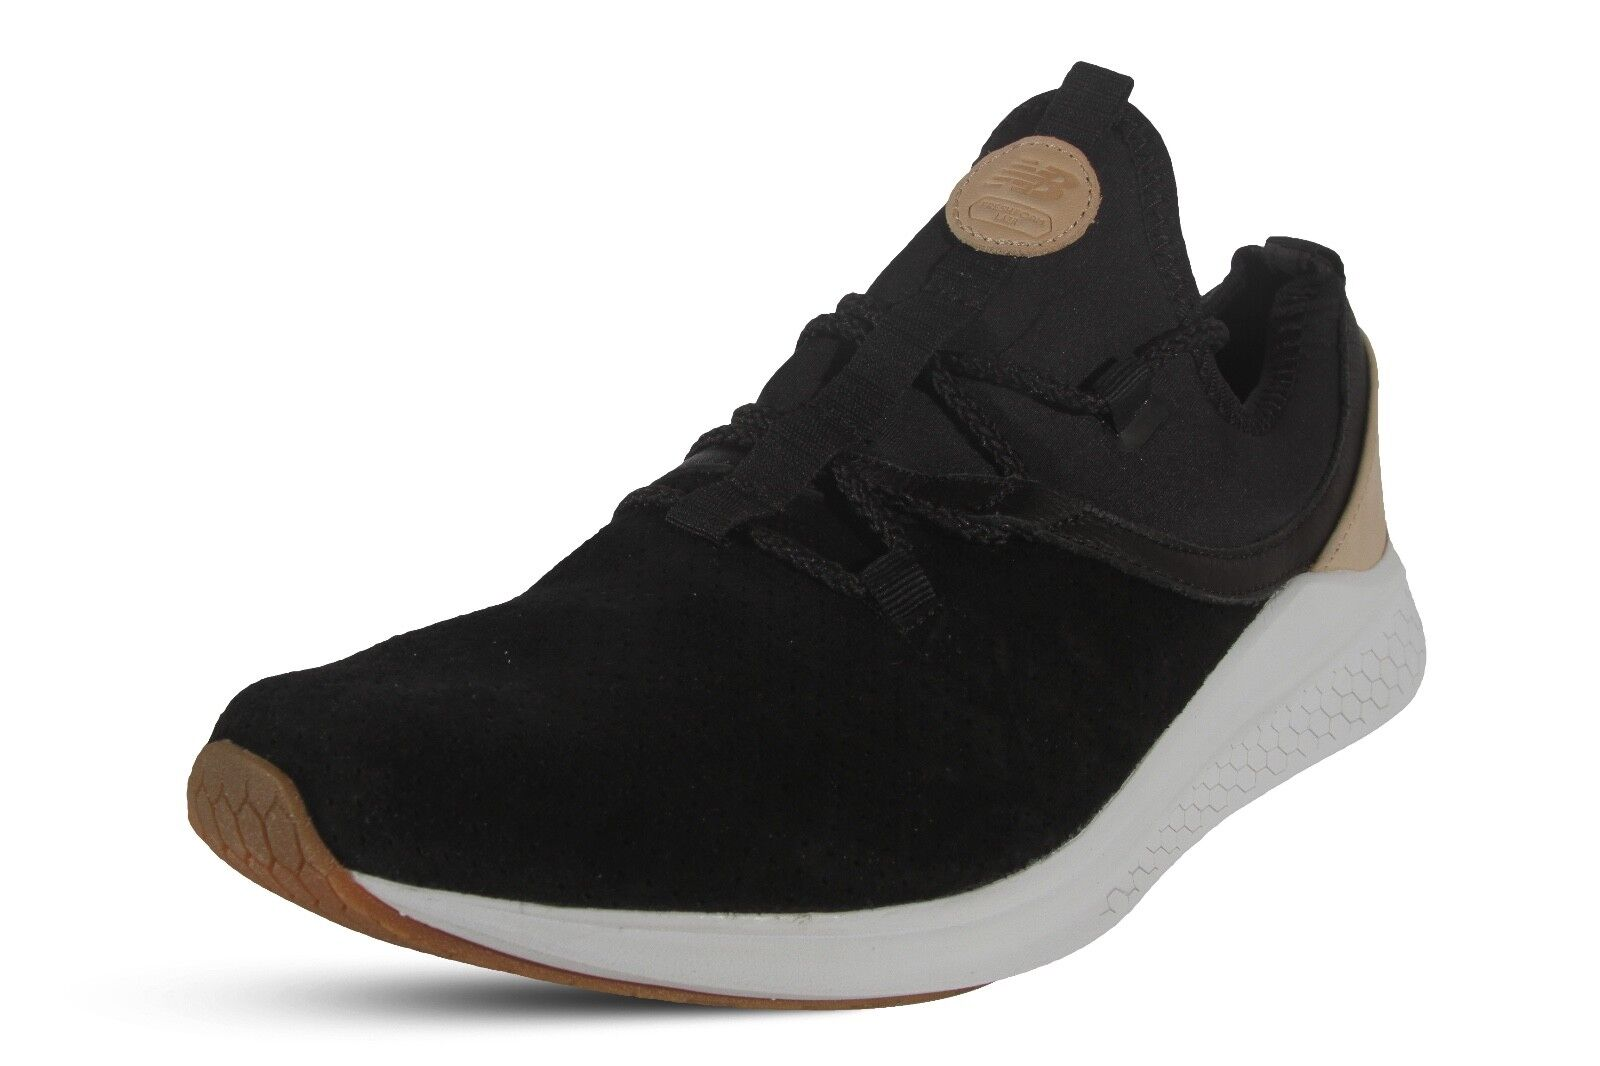 New Balance Men's Shoes Lazer Lux Fresh Foam Running Classic ULAZRLB Black Tan